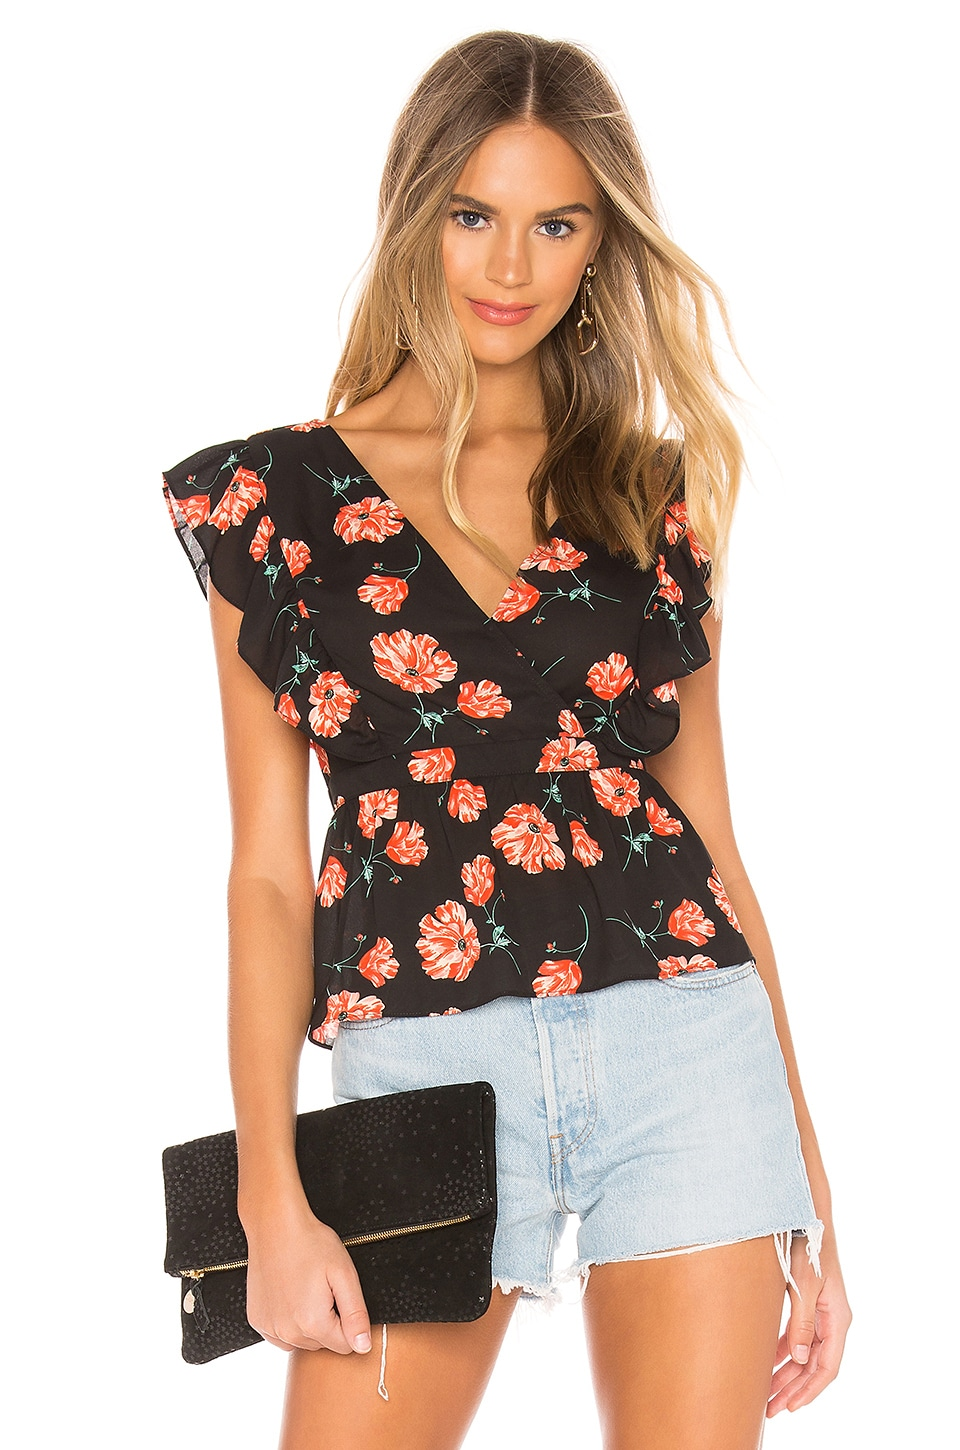 BB Dakota JACK by BB Dakota Poppy Love Top en Black